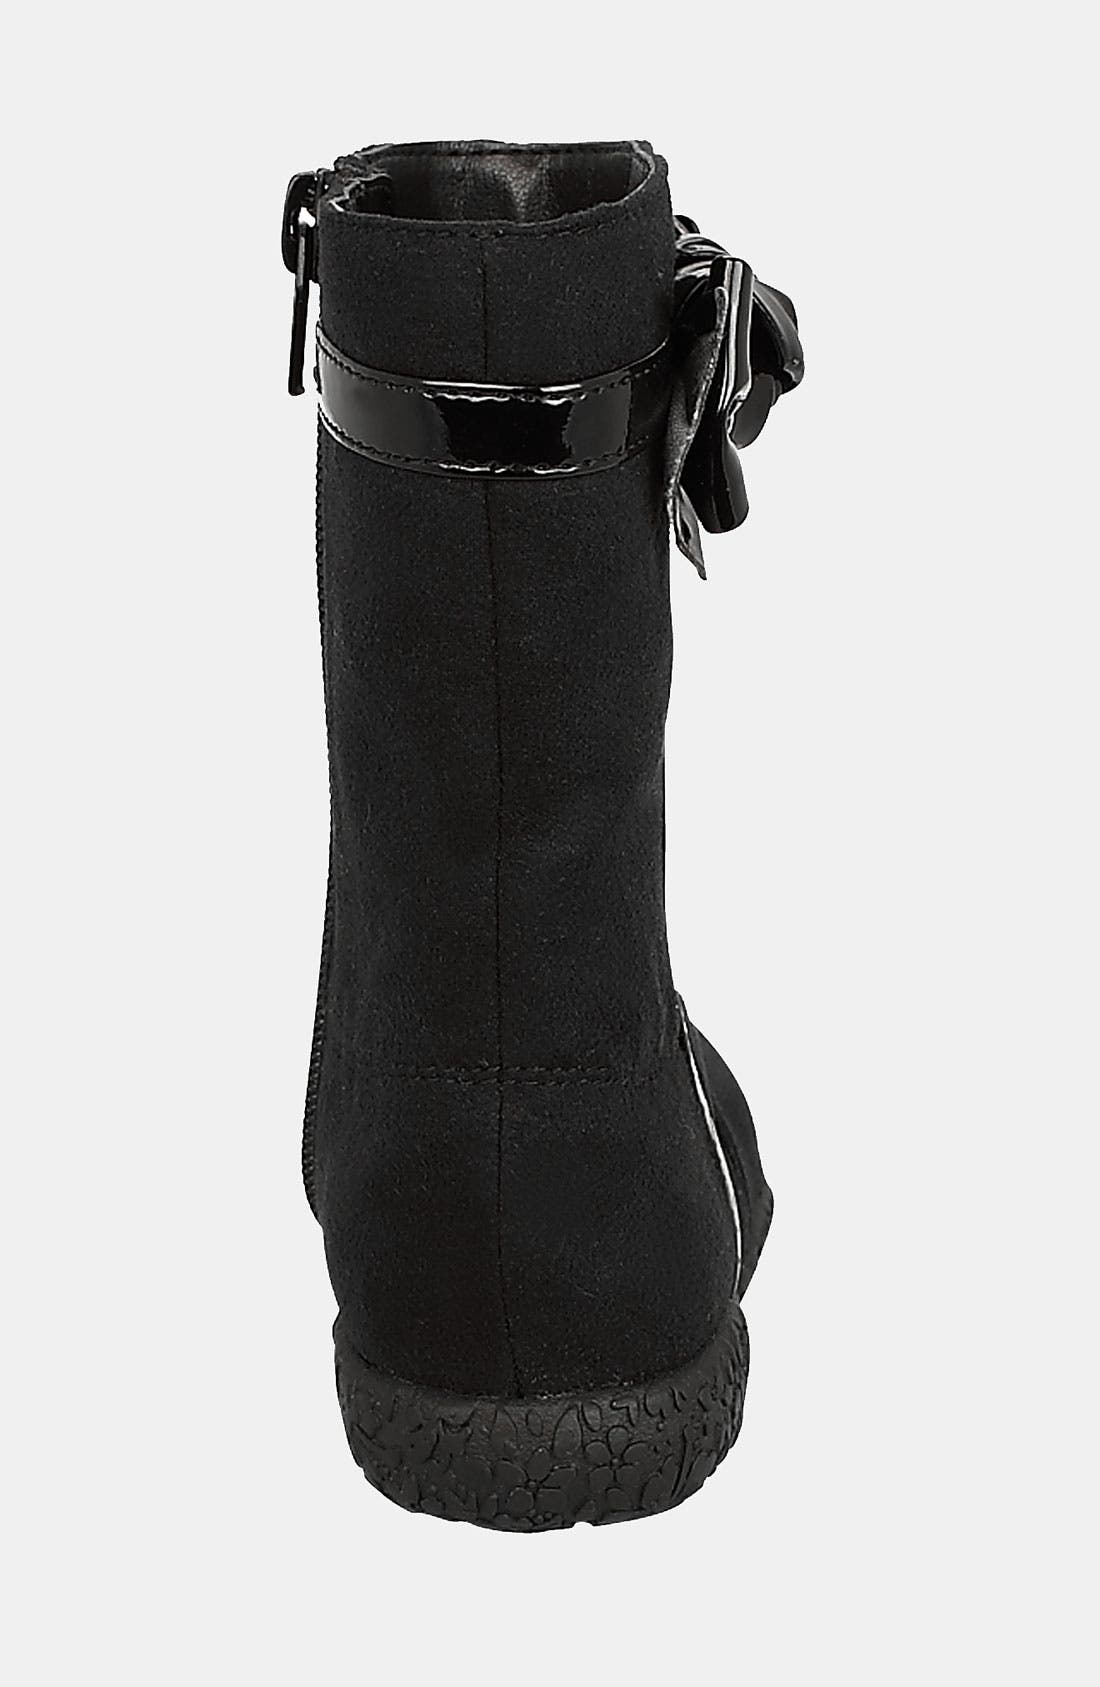 'Rosabel' Boot,                             Alternate thumbnail 2, color,                             Black/ Black